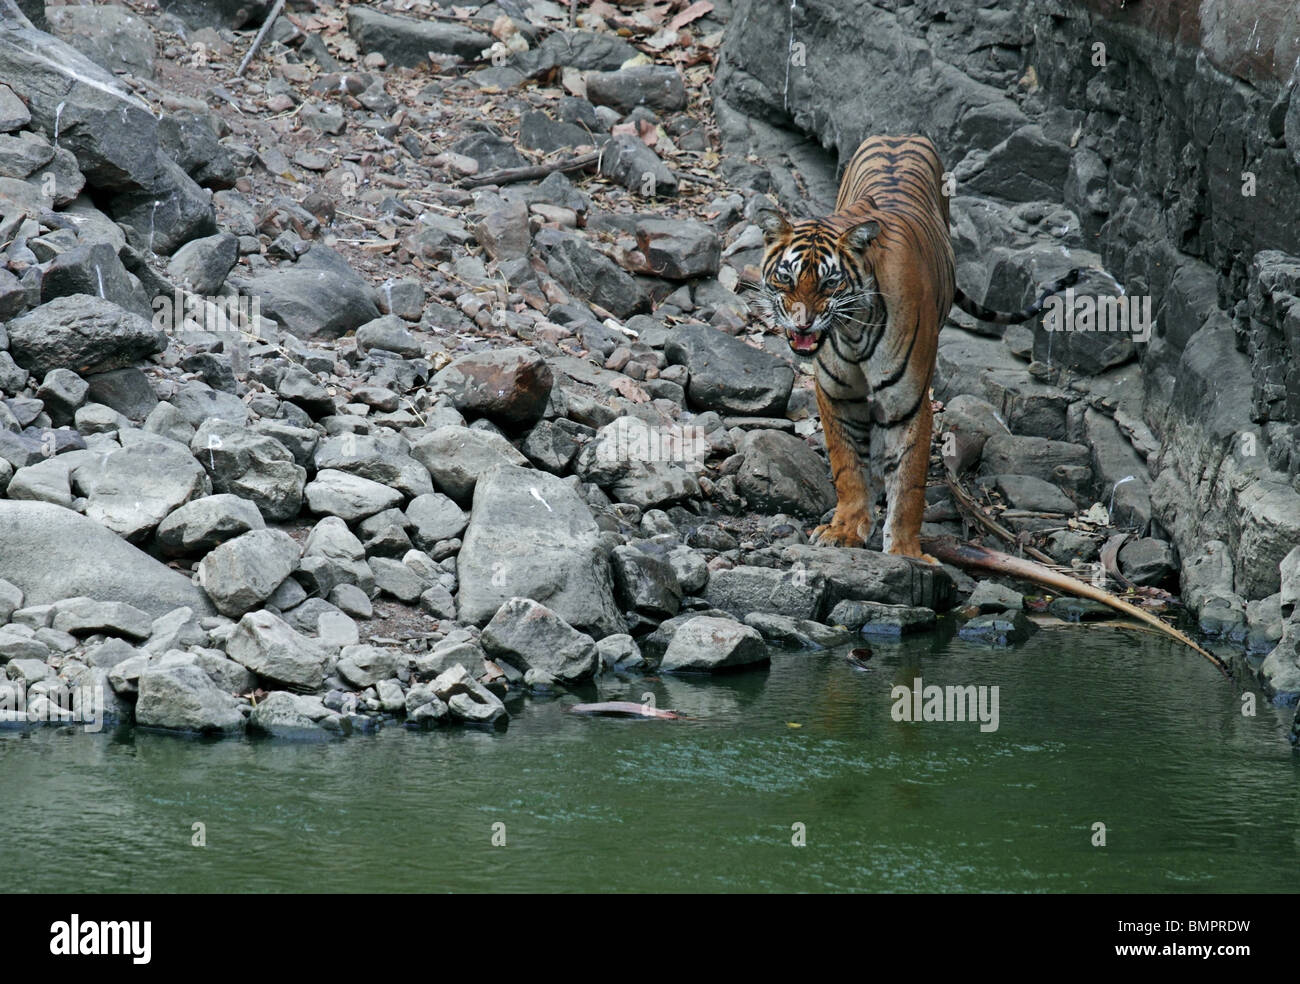 Tiger snarling near a water hole in Ranthambhore National Park, India - Stock Image